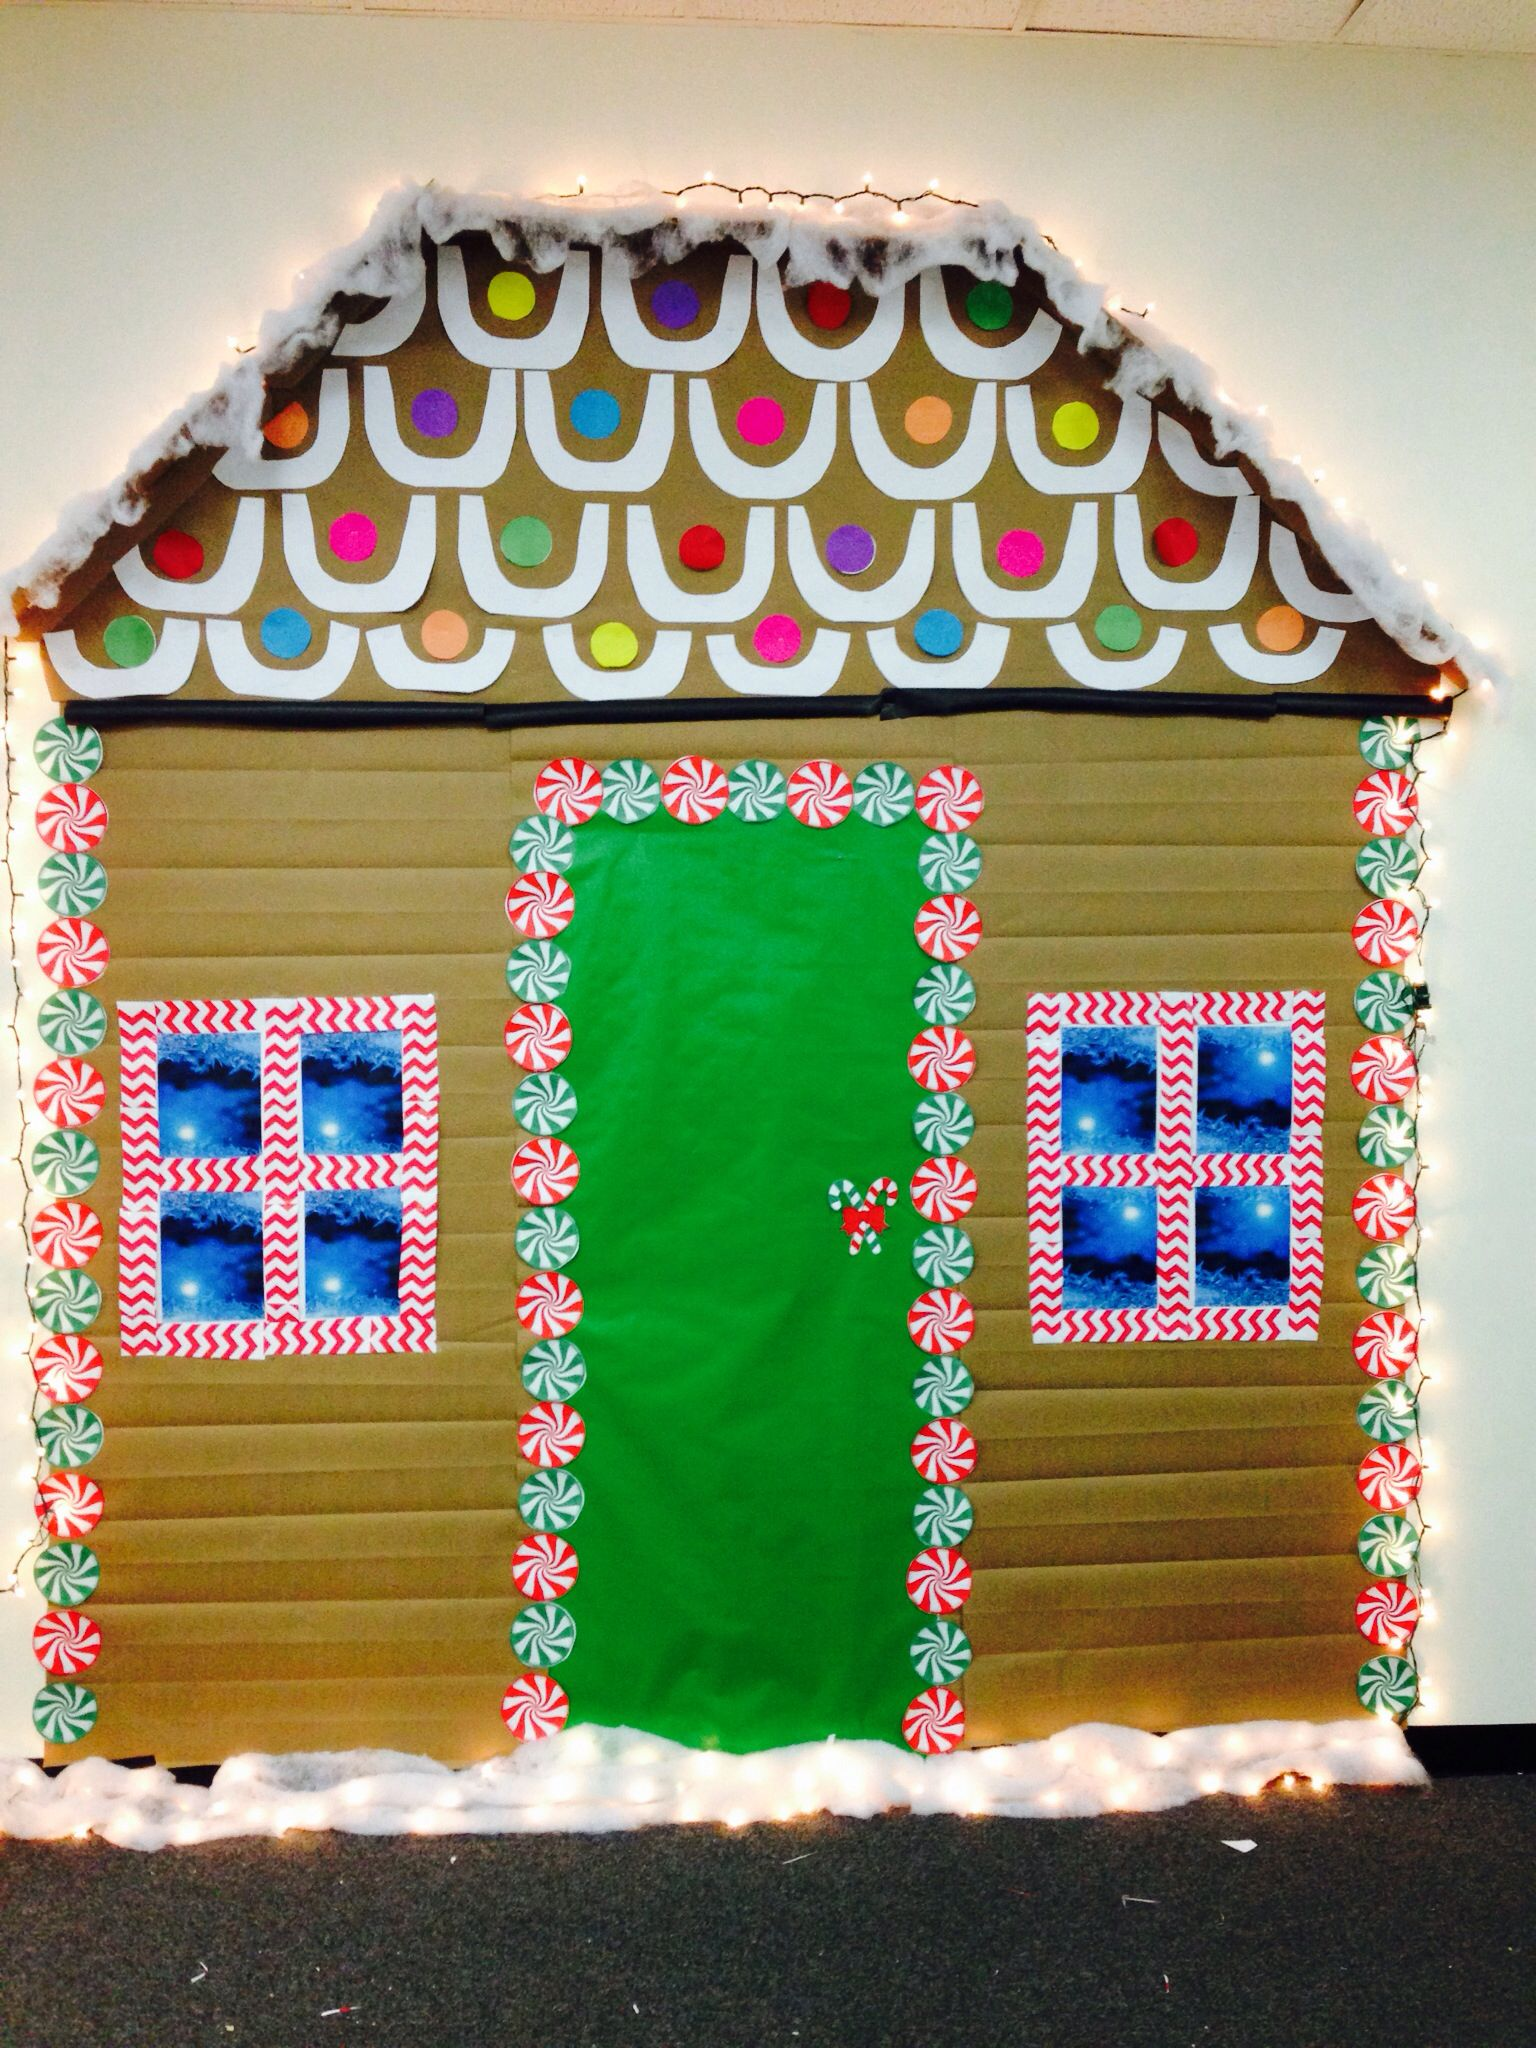 life size gingerbread house for the office gingerbread house christmas office decorations. Black Bedroom Furniture Sets. Home Design Ideas